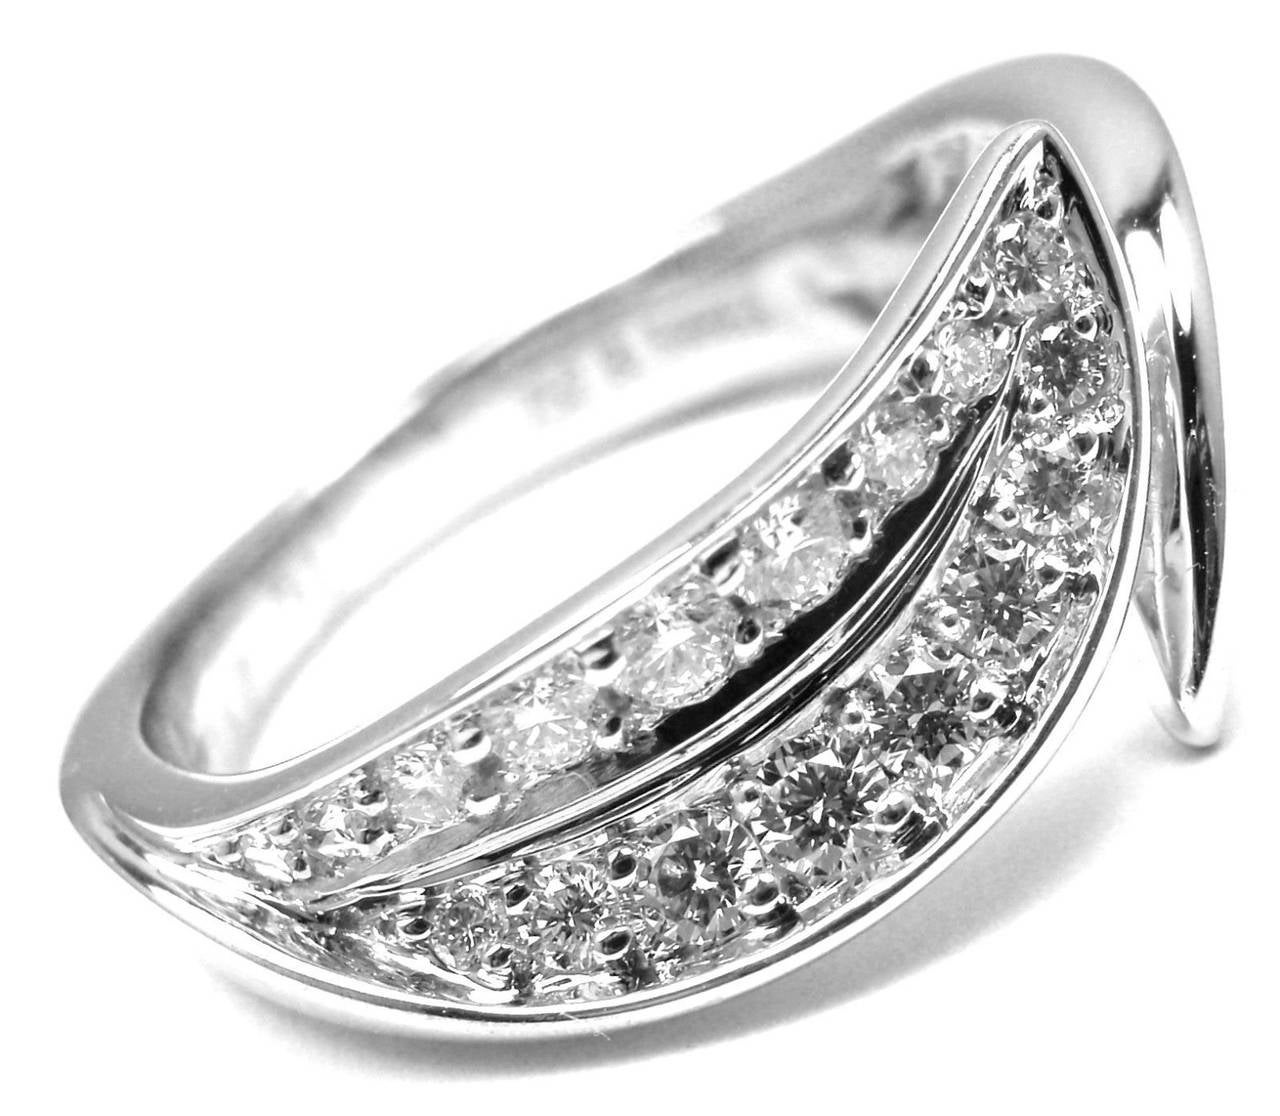 Van Cleef & Arpels Diamond Gold Band Ring For Sale 1